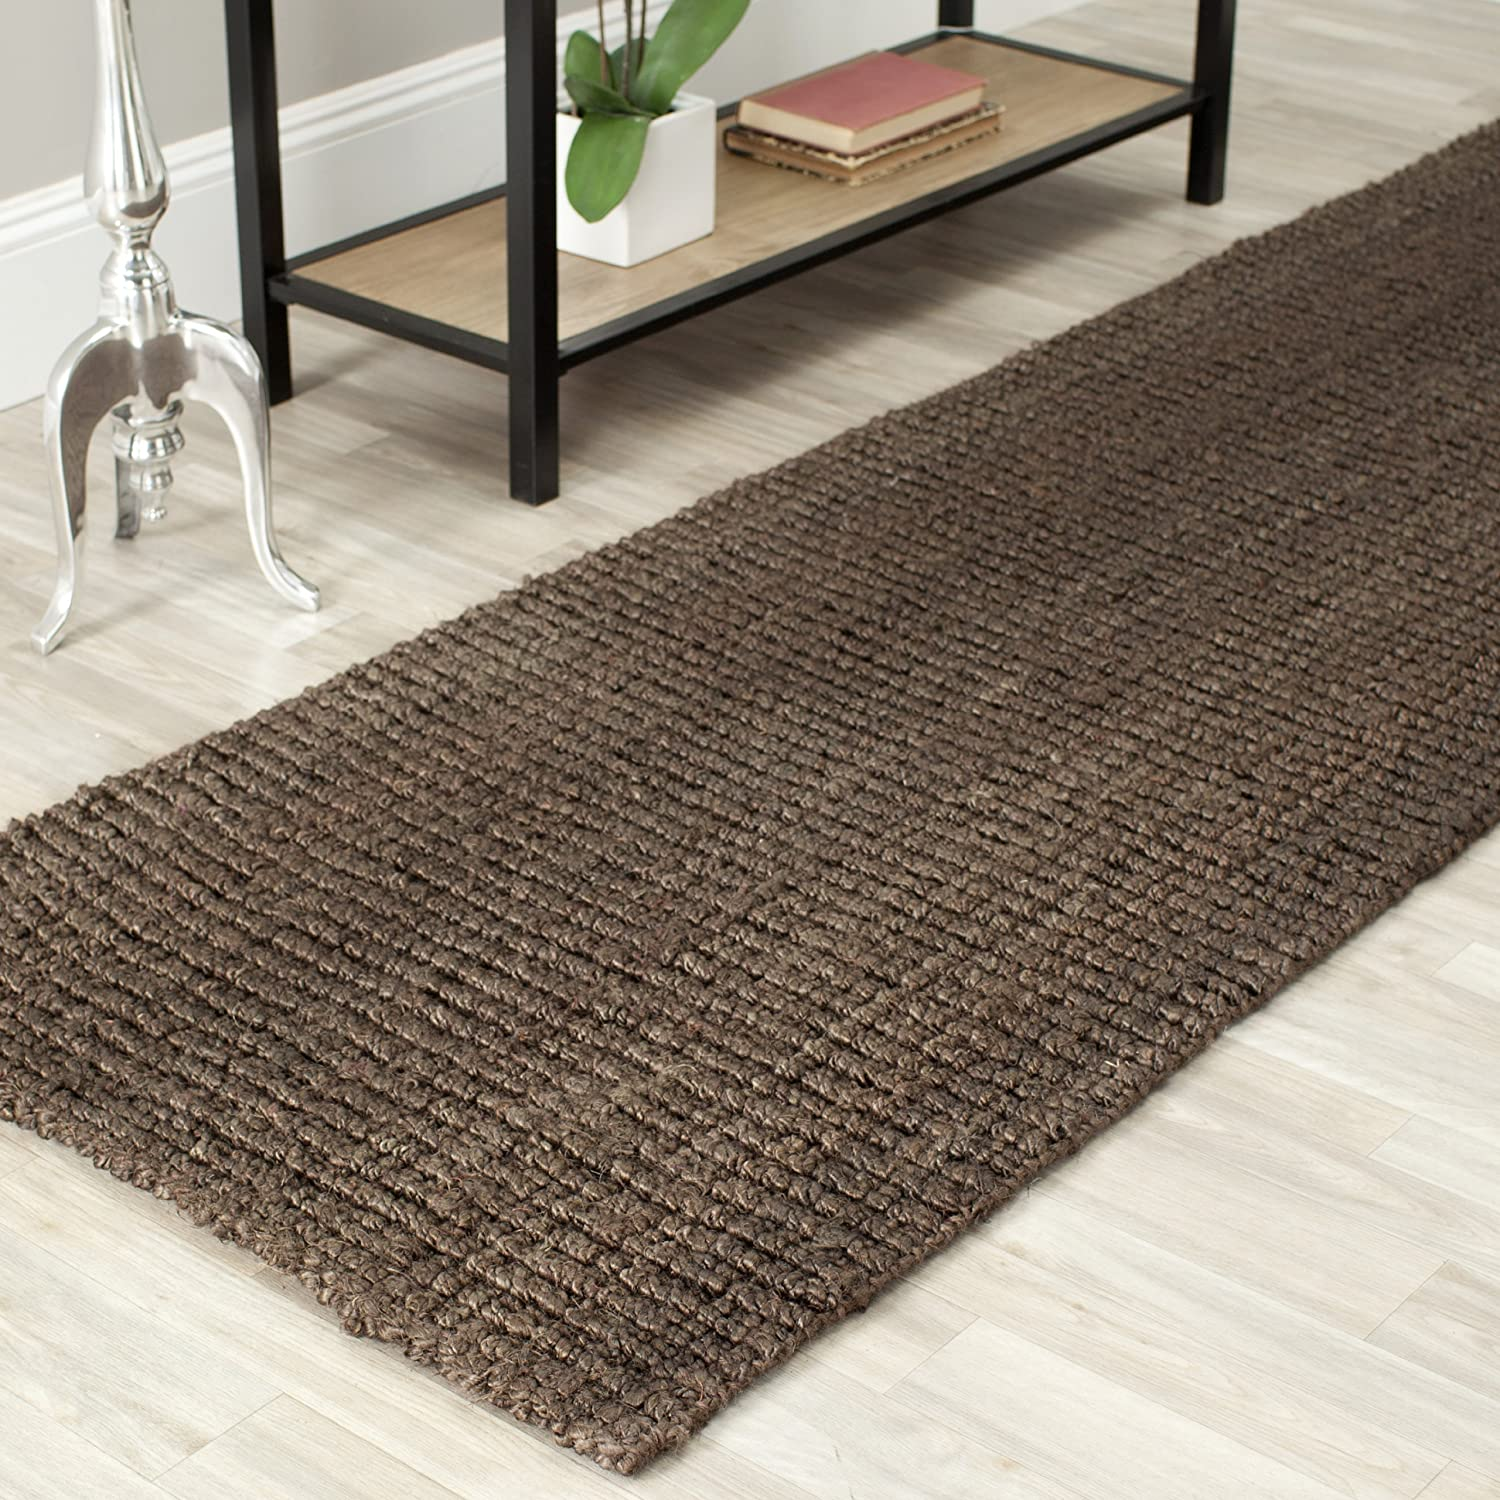 Brown 2' x 3' Safavieh Natural Fiber Collection NF447A Hand Woven Natural Jute Area Rug (2' x 12')